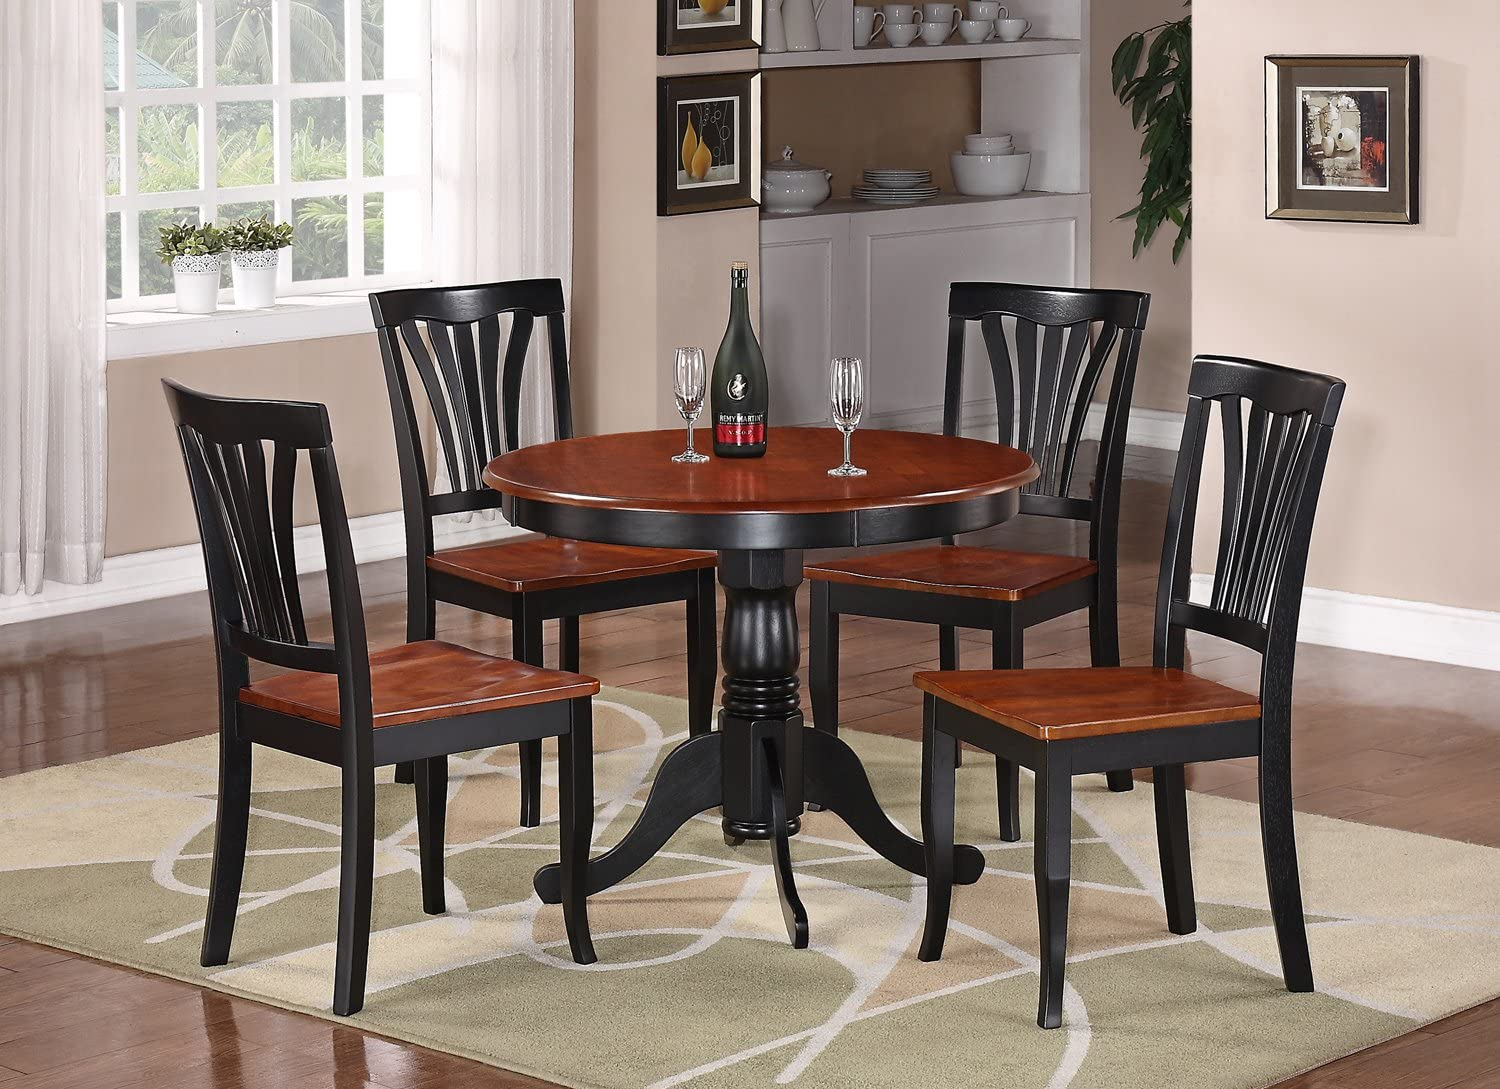 5 PCS Dining Set Dining Room Table and High Back Chairs Wood Legs Grey Wash Oak